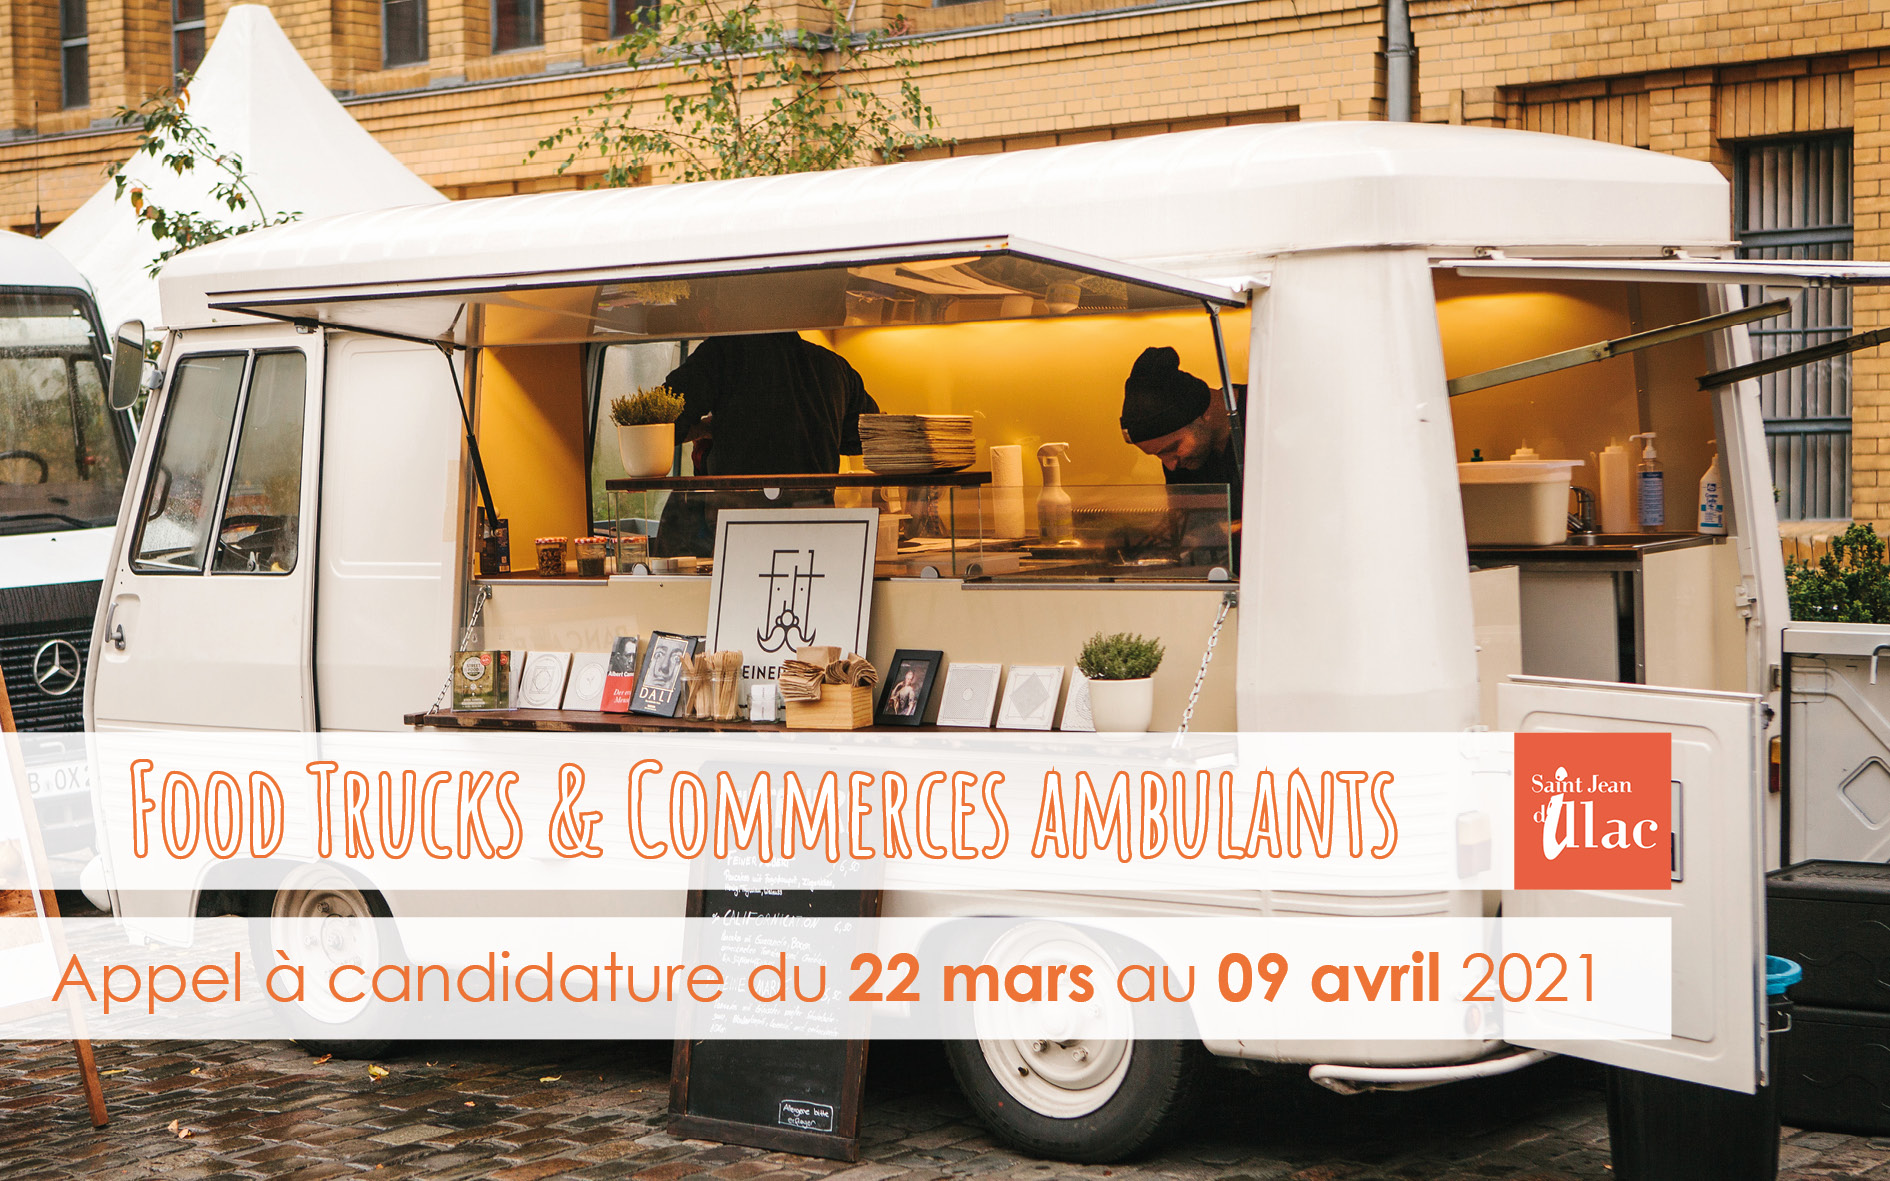 2021 Appel candidature Food trucks Carrousel